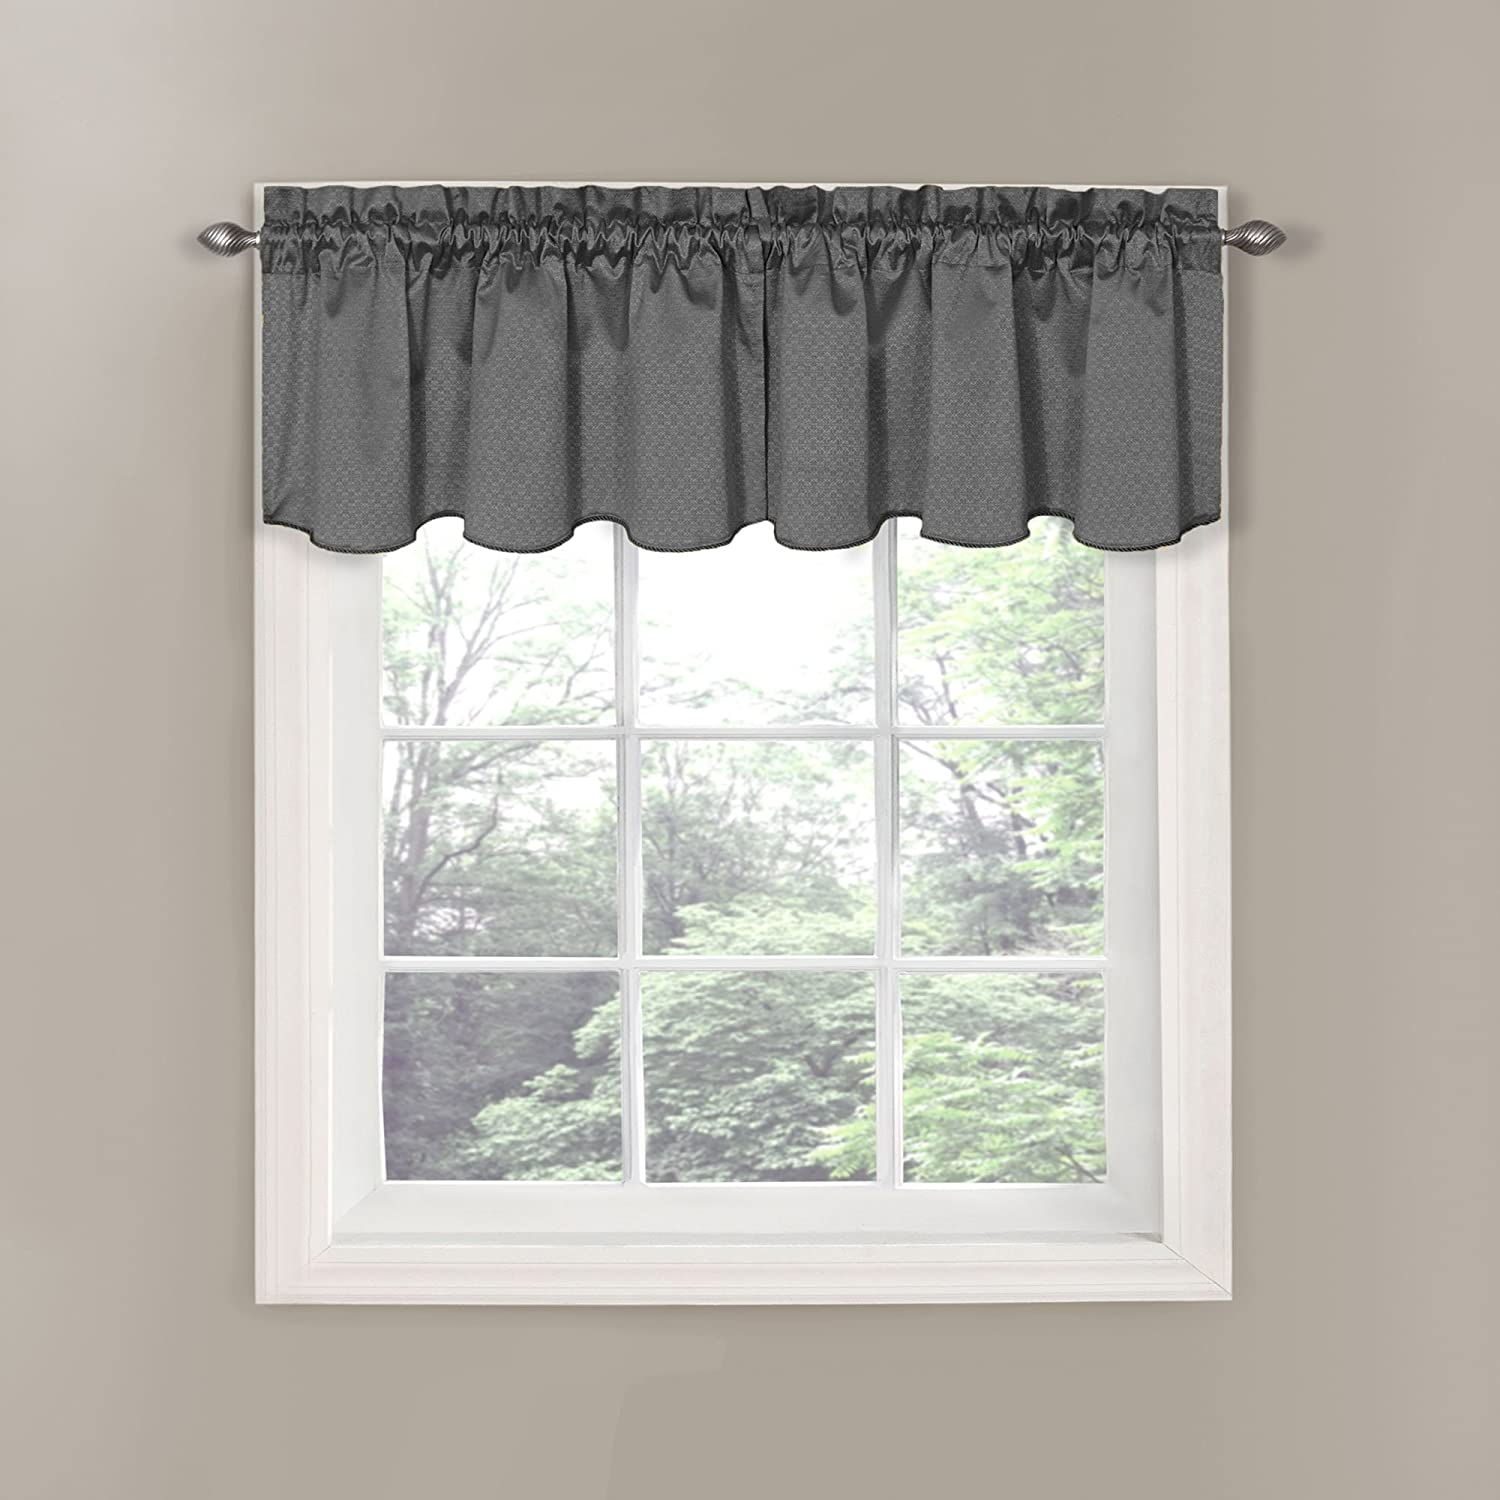 idea white valances for decorations attractive design and of valance floral grey elegant image gray gentle